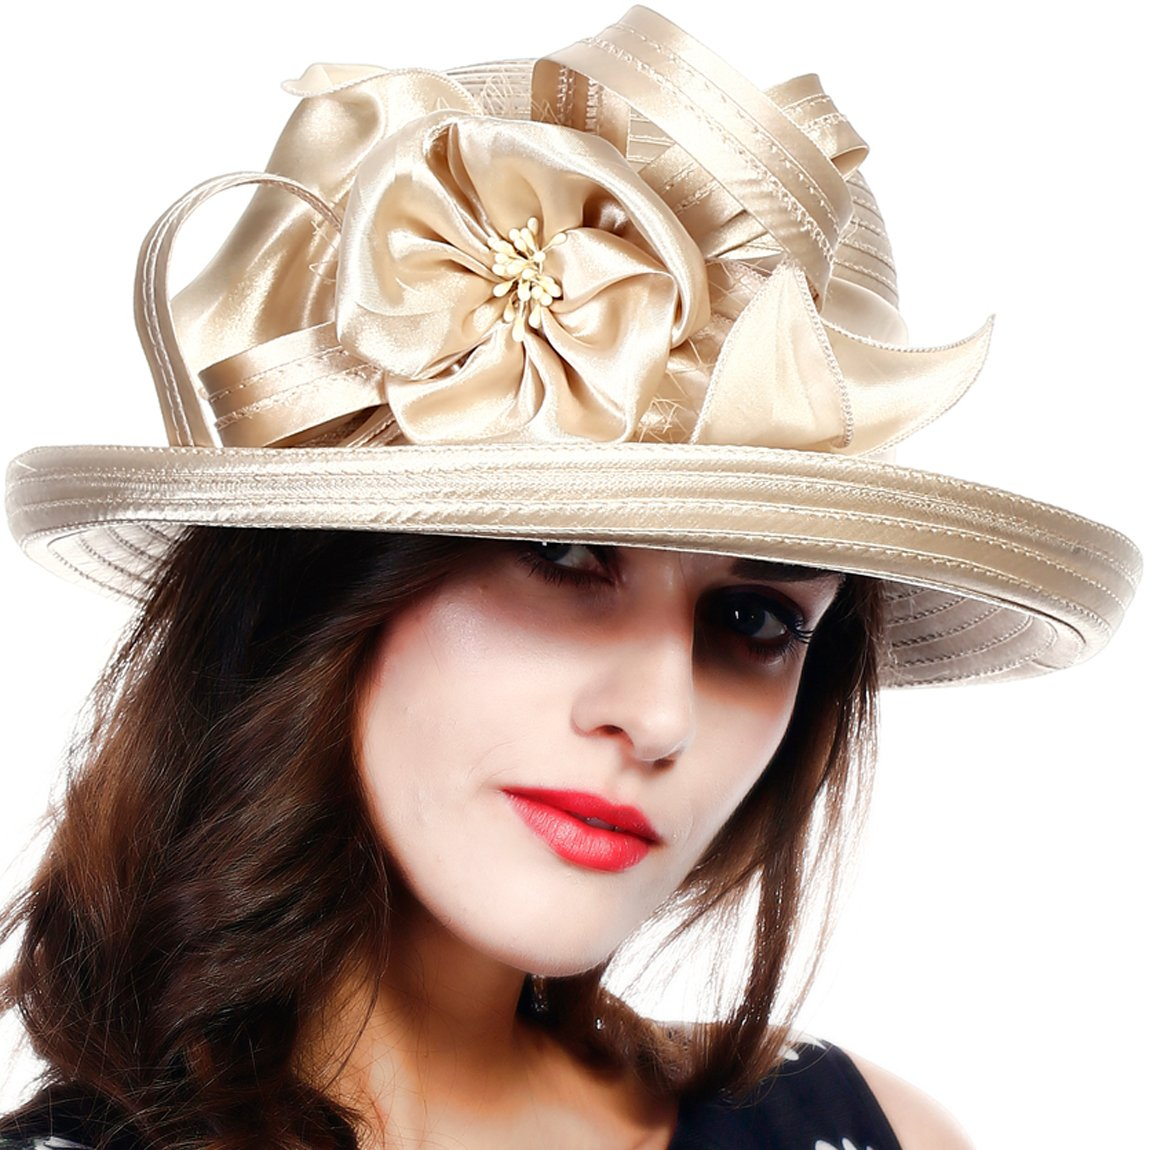 FORBUSITE Large Kettle Brimmed Satin Braid Church Hats Derby Party Hats for Womens SD710 SD710-DK-BK